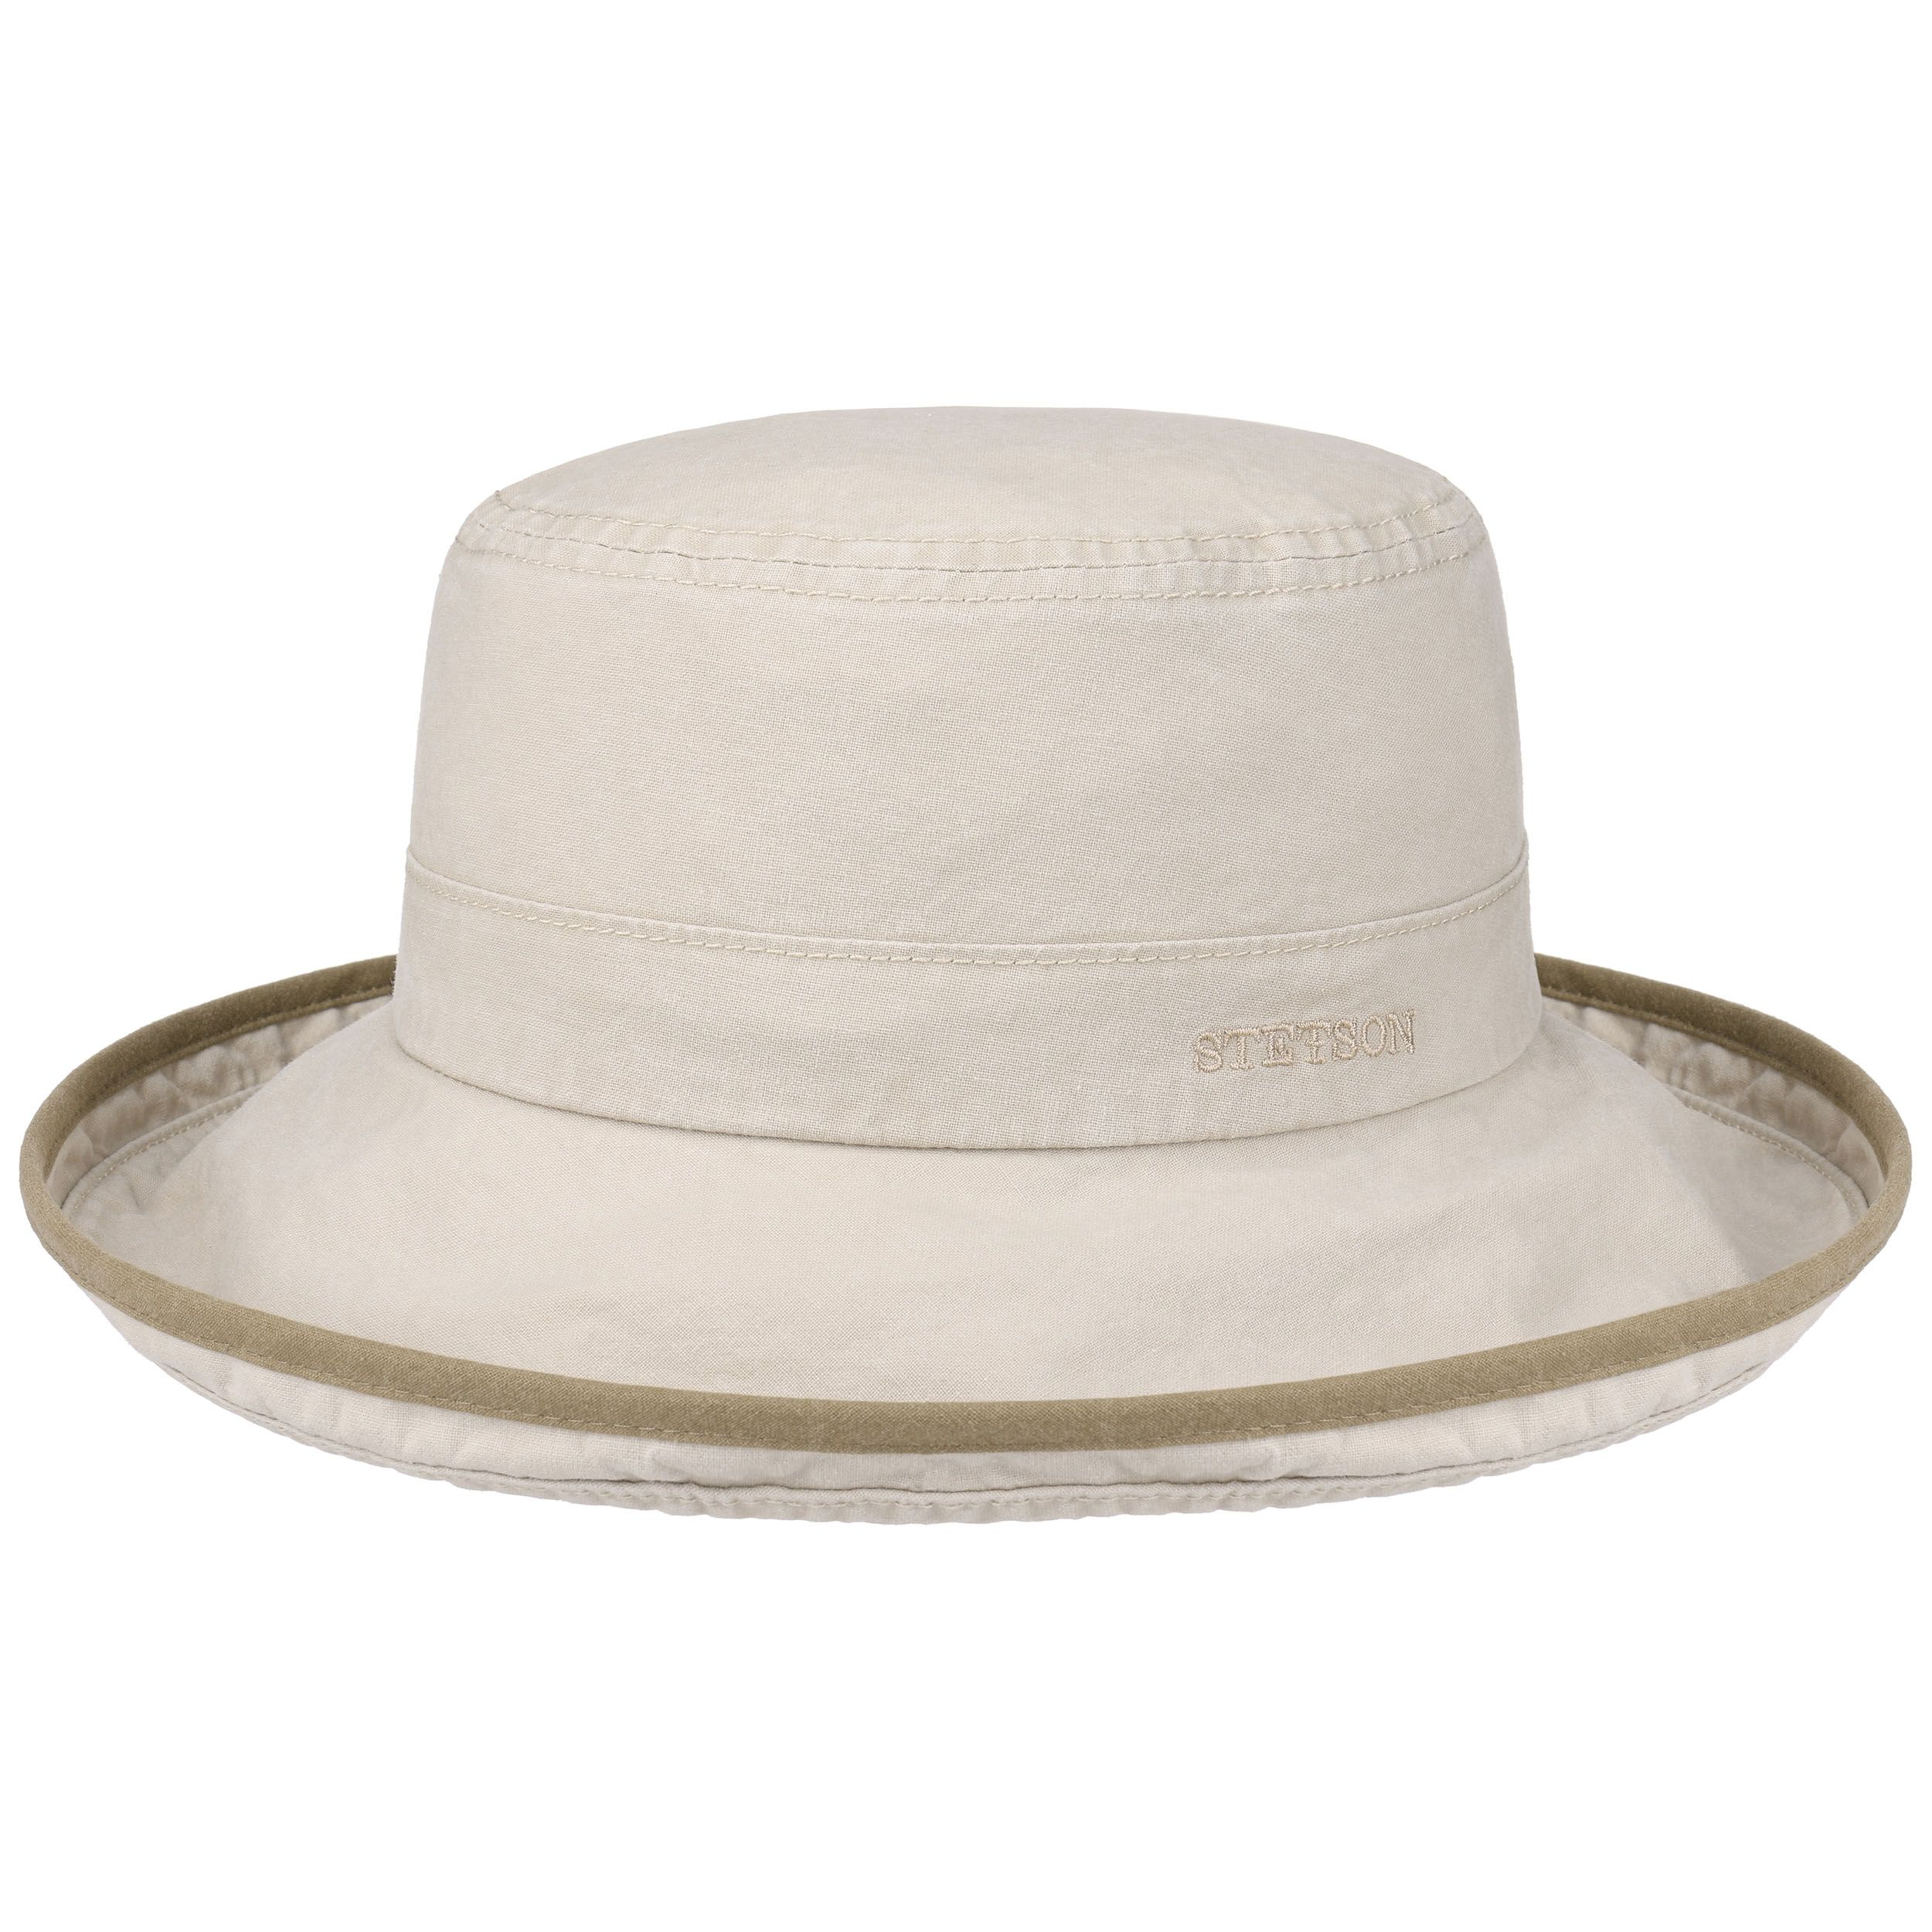 Stetson Lonoke Ladies Hat Beige